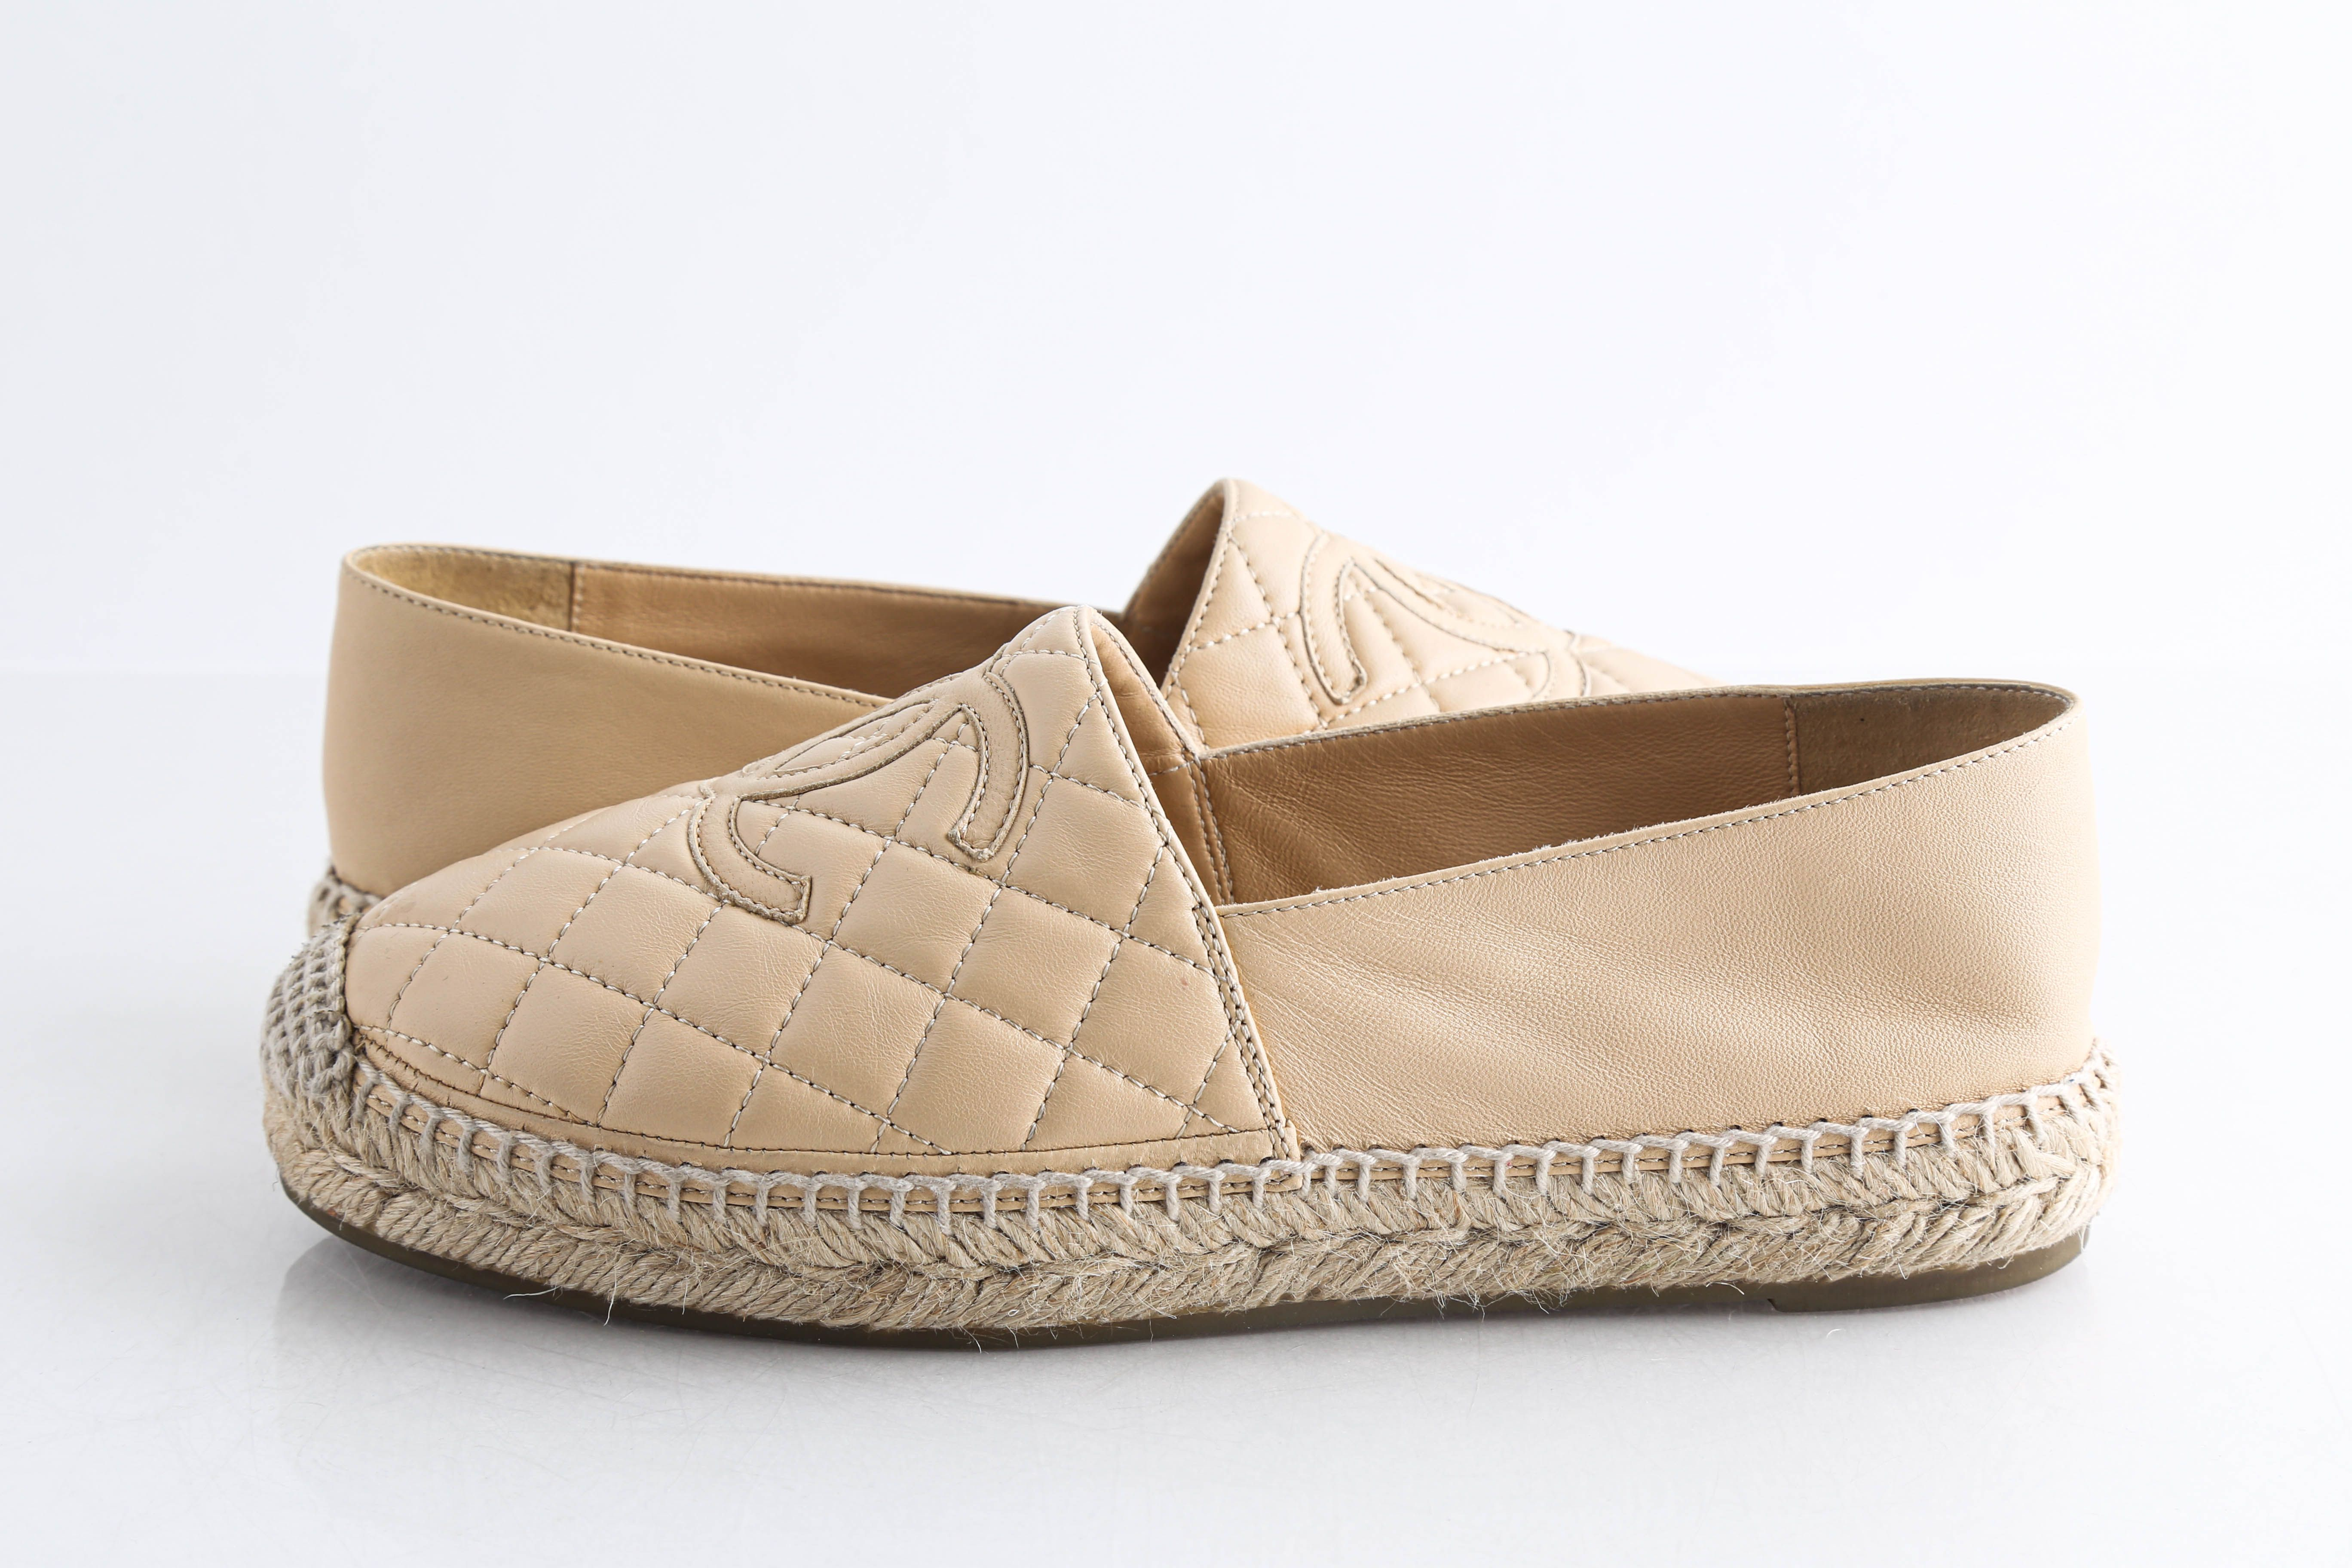 Chanel Lambskin Quilted CC Espadrilles